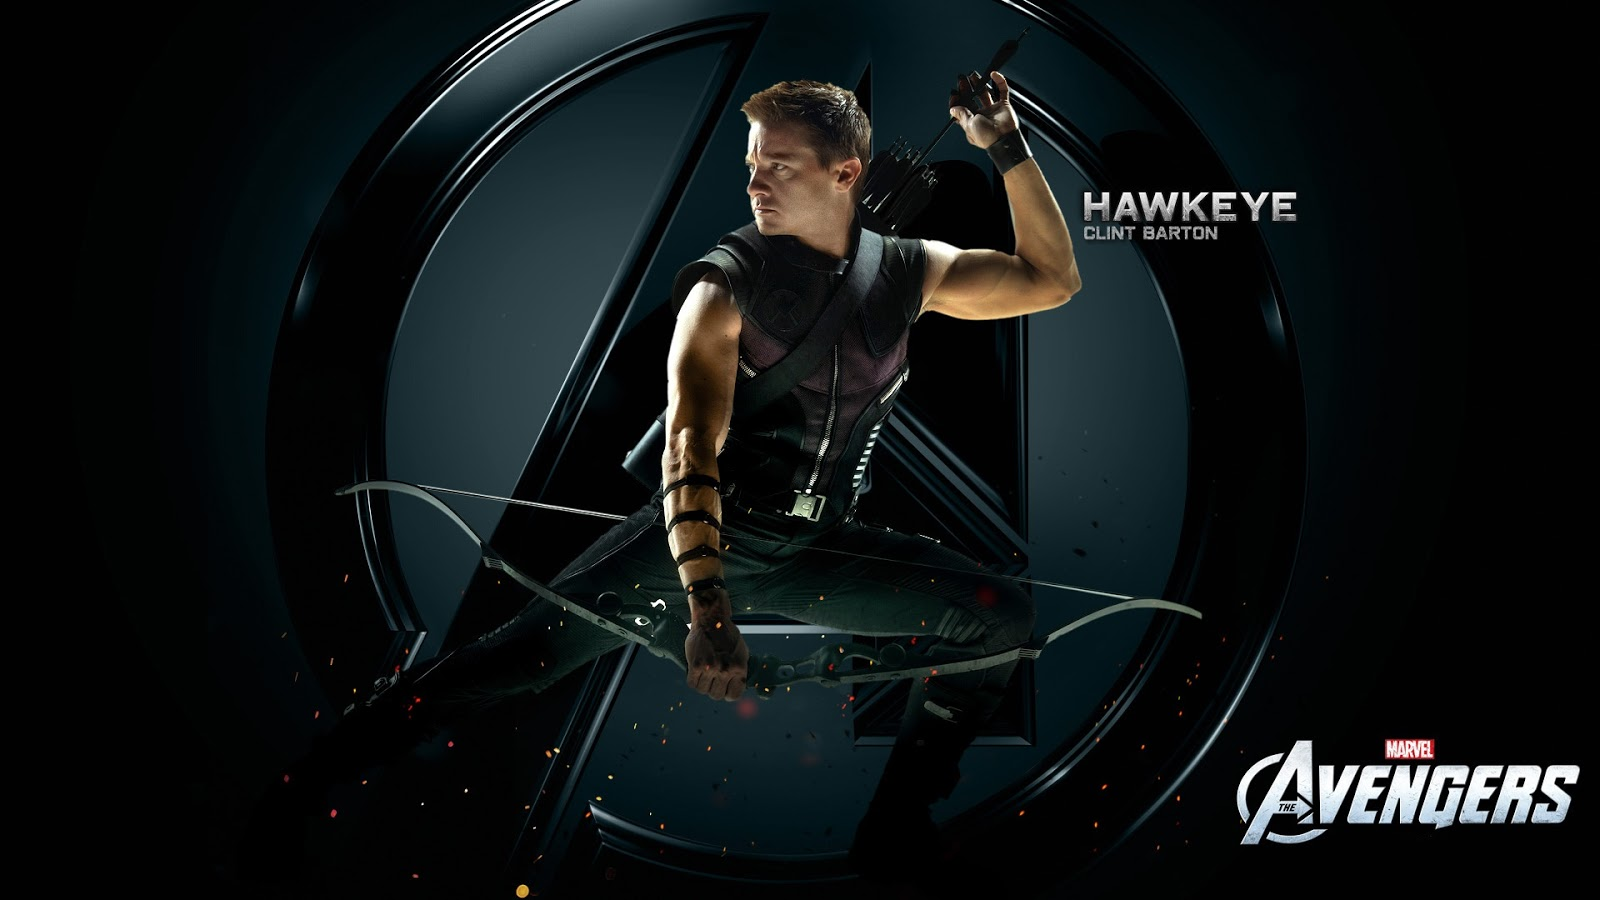 Hawkeye Clint Barton Avengers Wallpaper